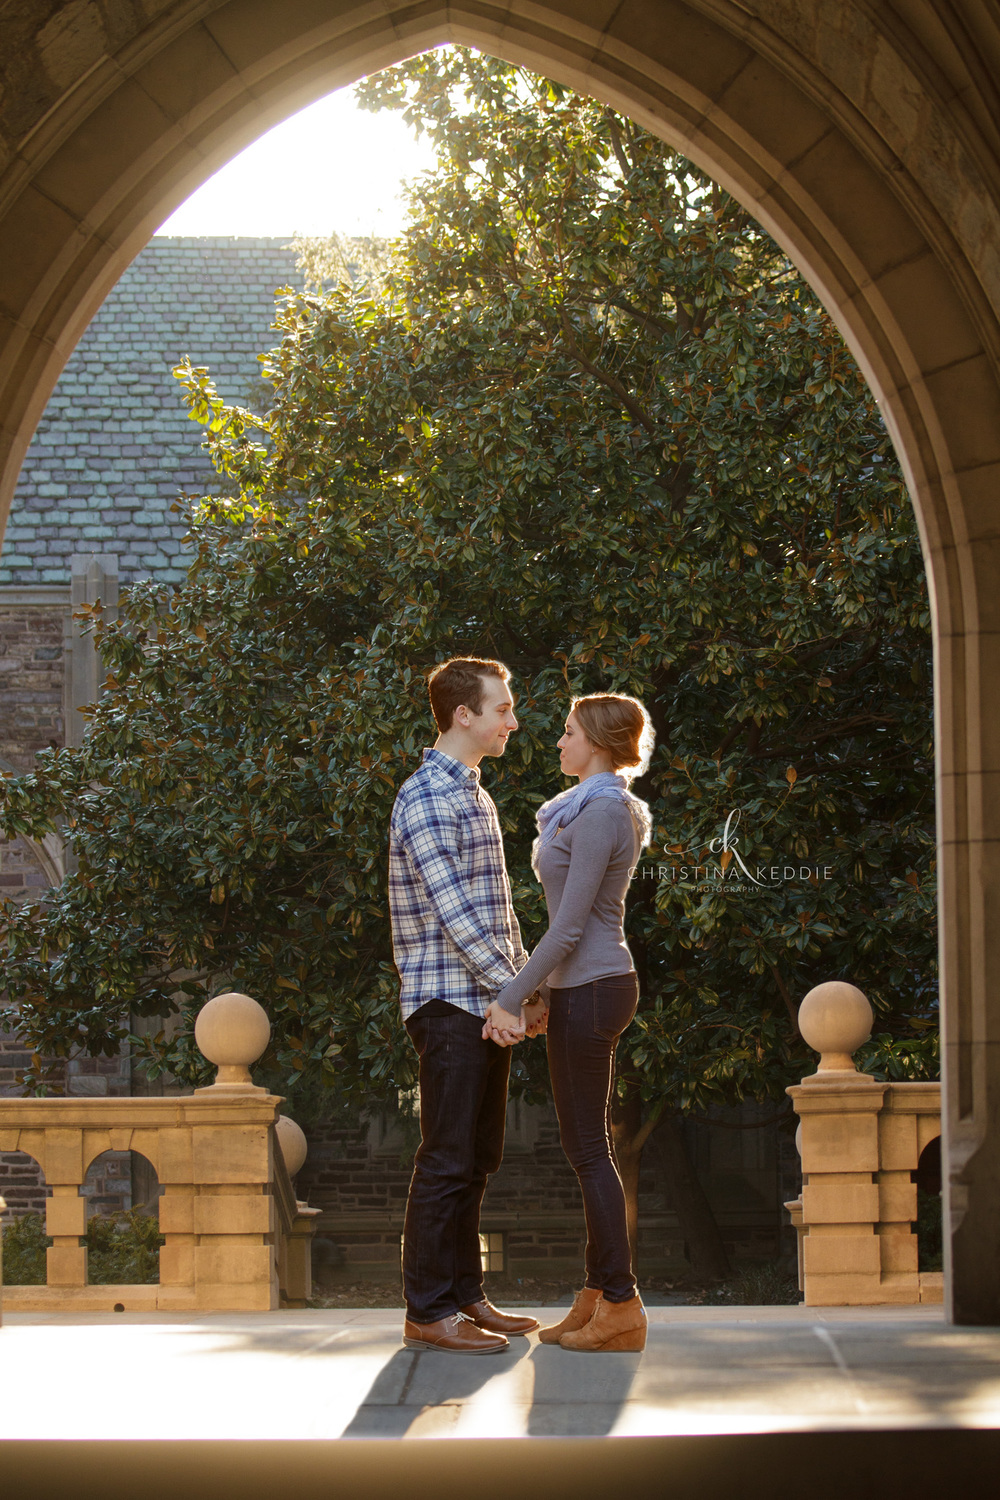 Engaged couple sunlit under gothic archway | Christina Keddie Photography | Princeton NJ engagement photographer